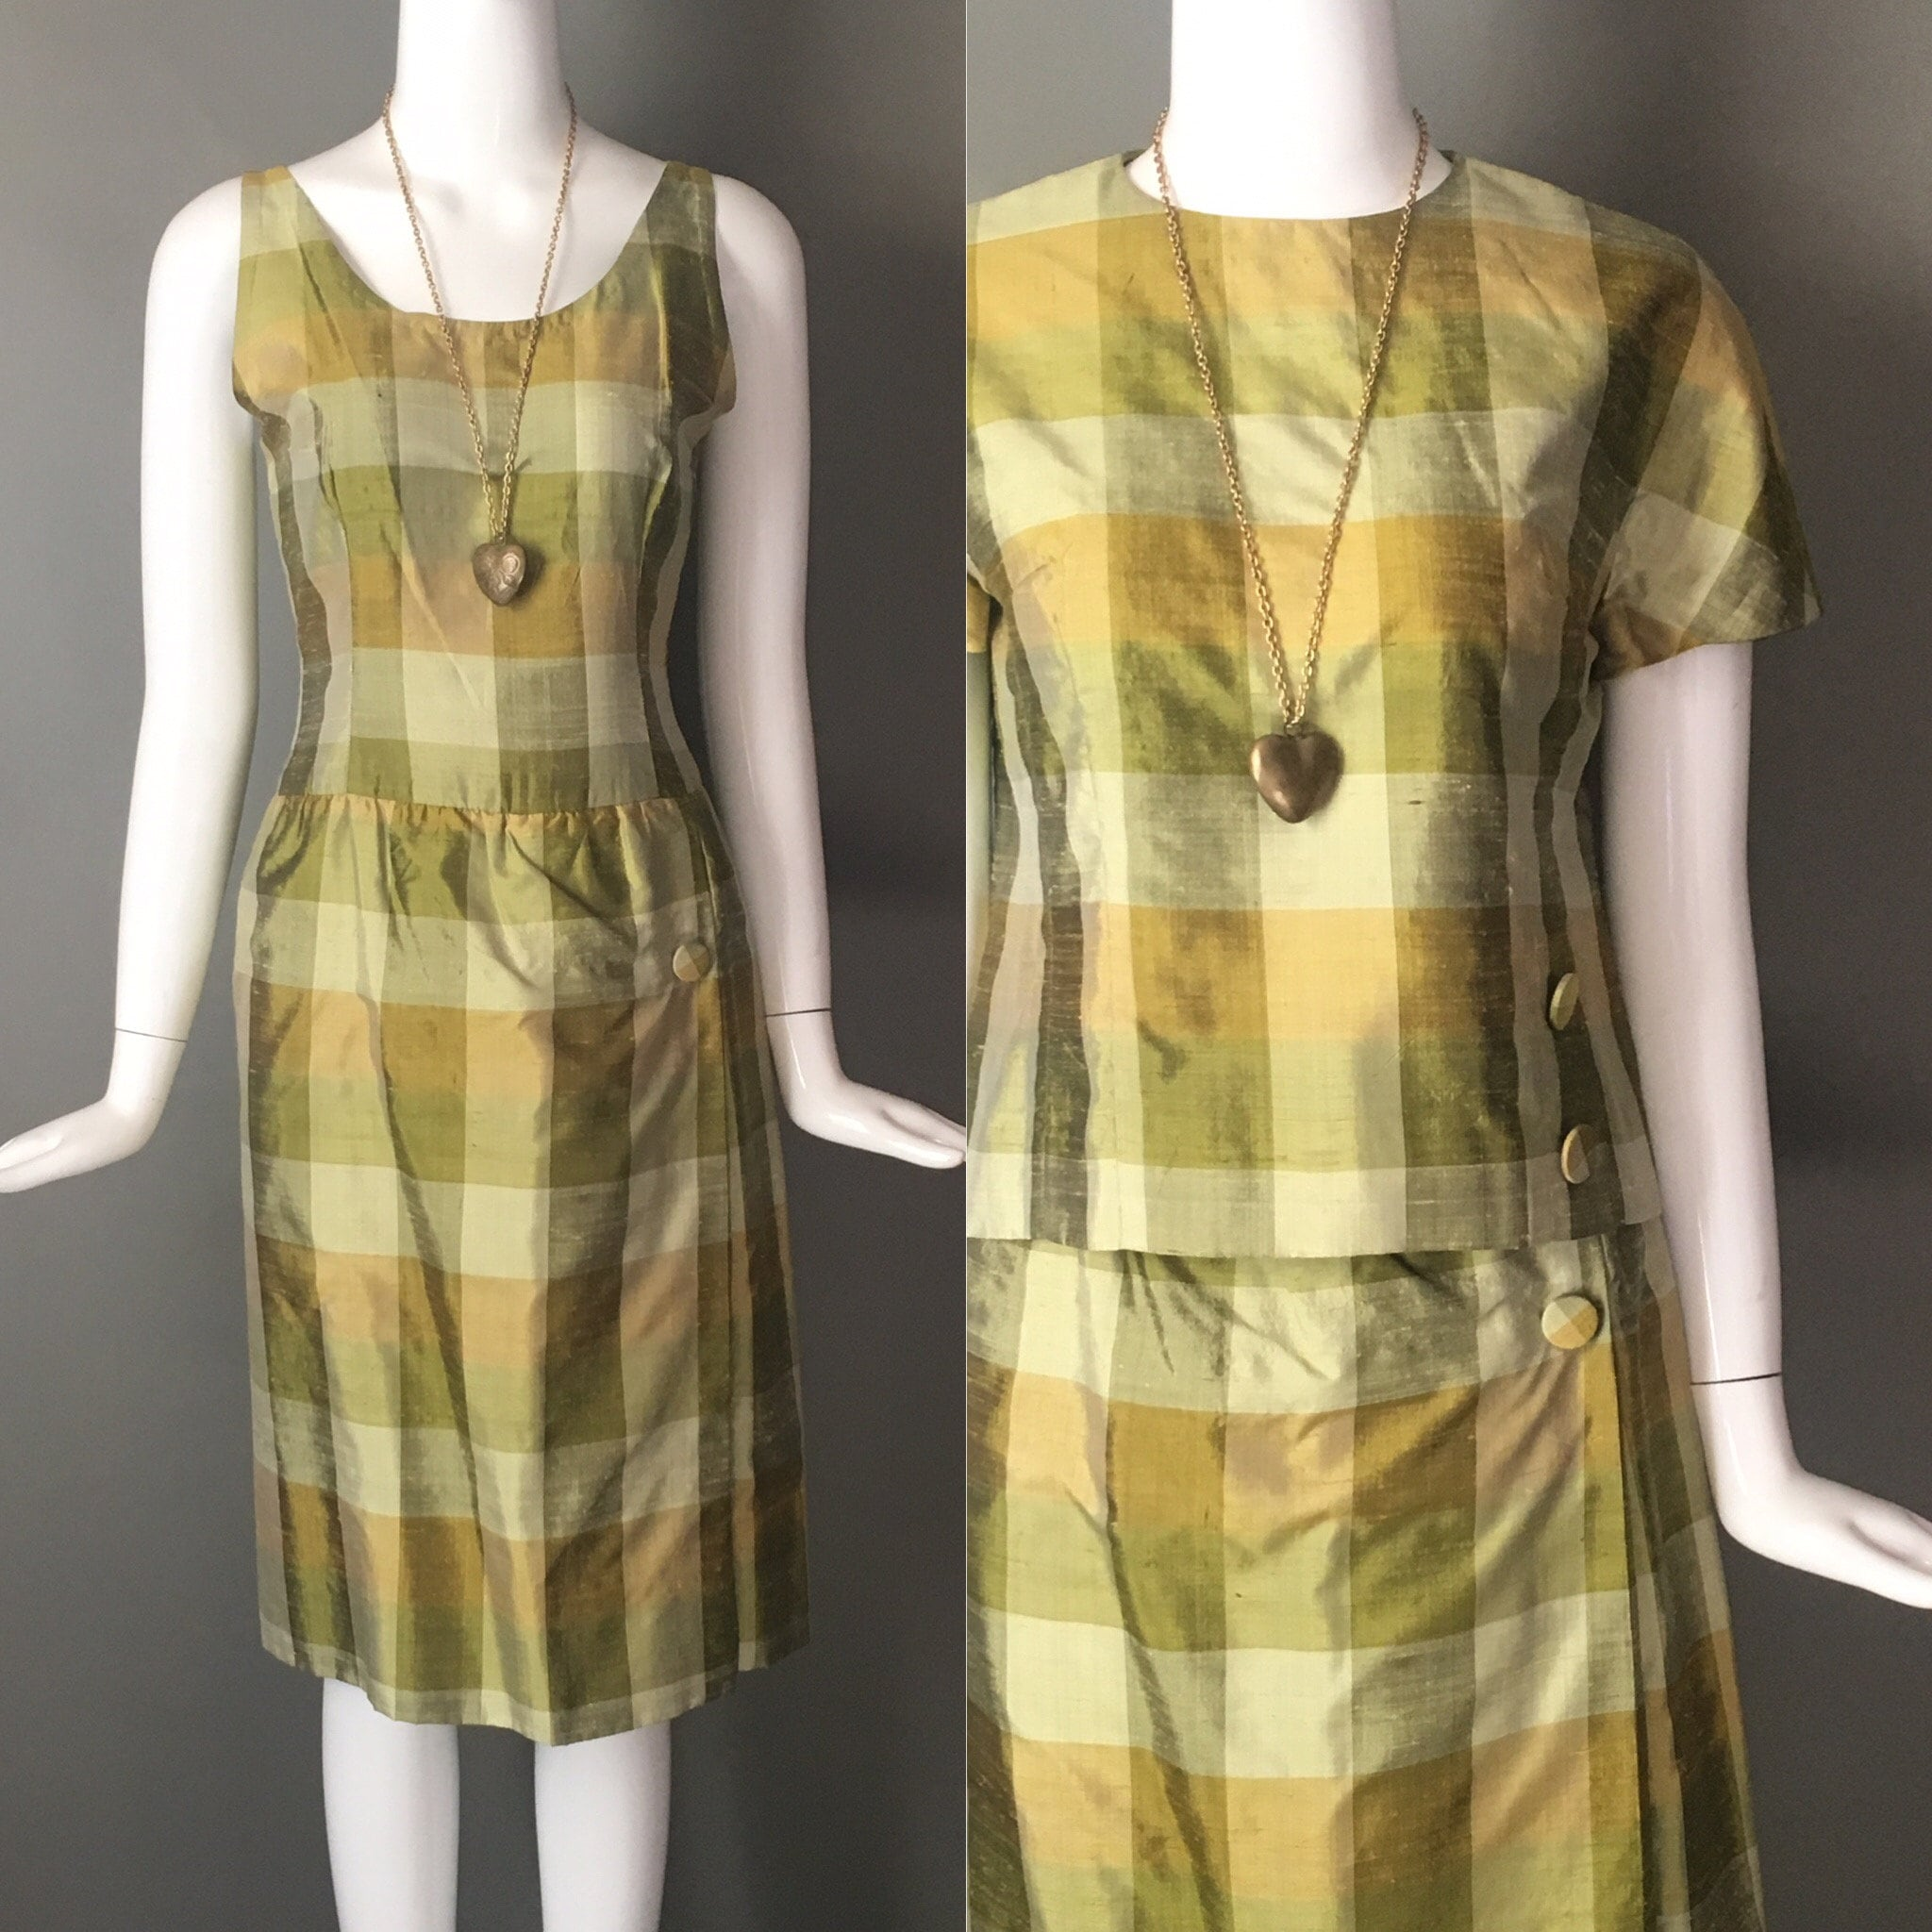 1950s Handbags, Purses, and Evening Bag Styles Vtg 50S Silk Chartreuse Acid Green Plaid Print 2 Piece Outfit Sleeveless Dress Matching Top Metal Zips S Mint Condition $23.95 AT vintagedancer.com